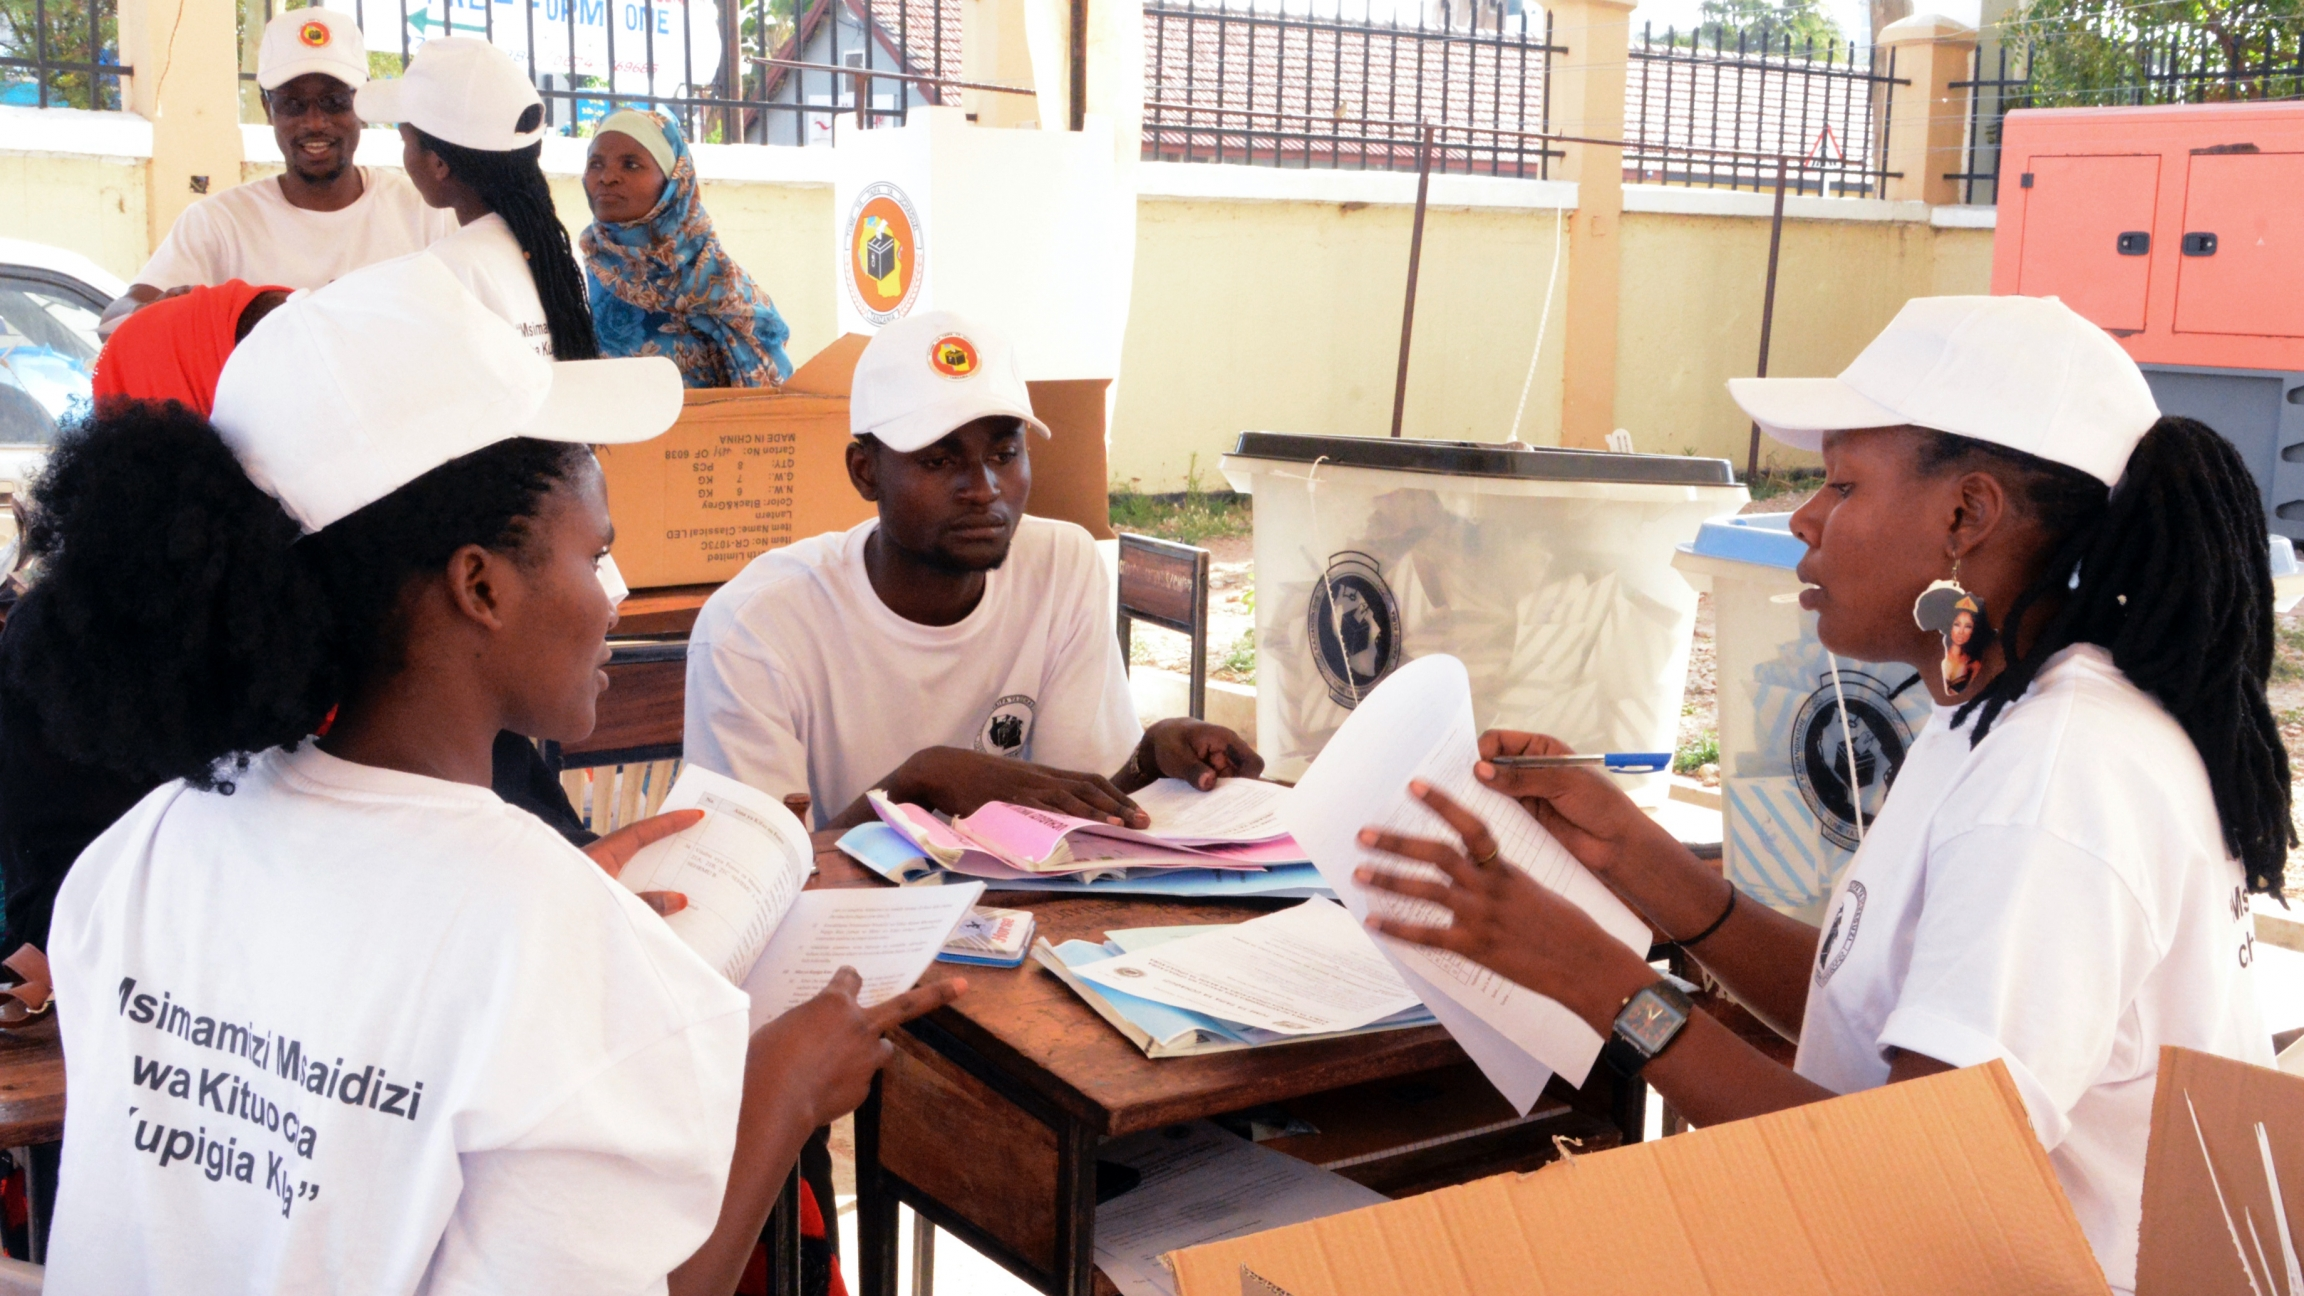 Three poll workers wearing white shirts and hats sit at a table together and sort through papers